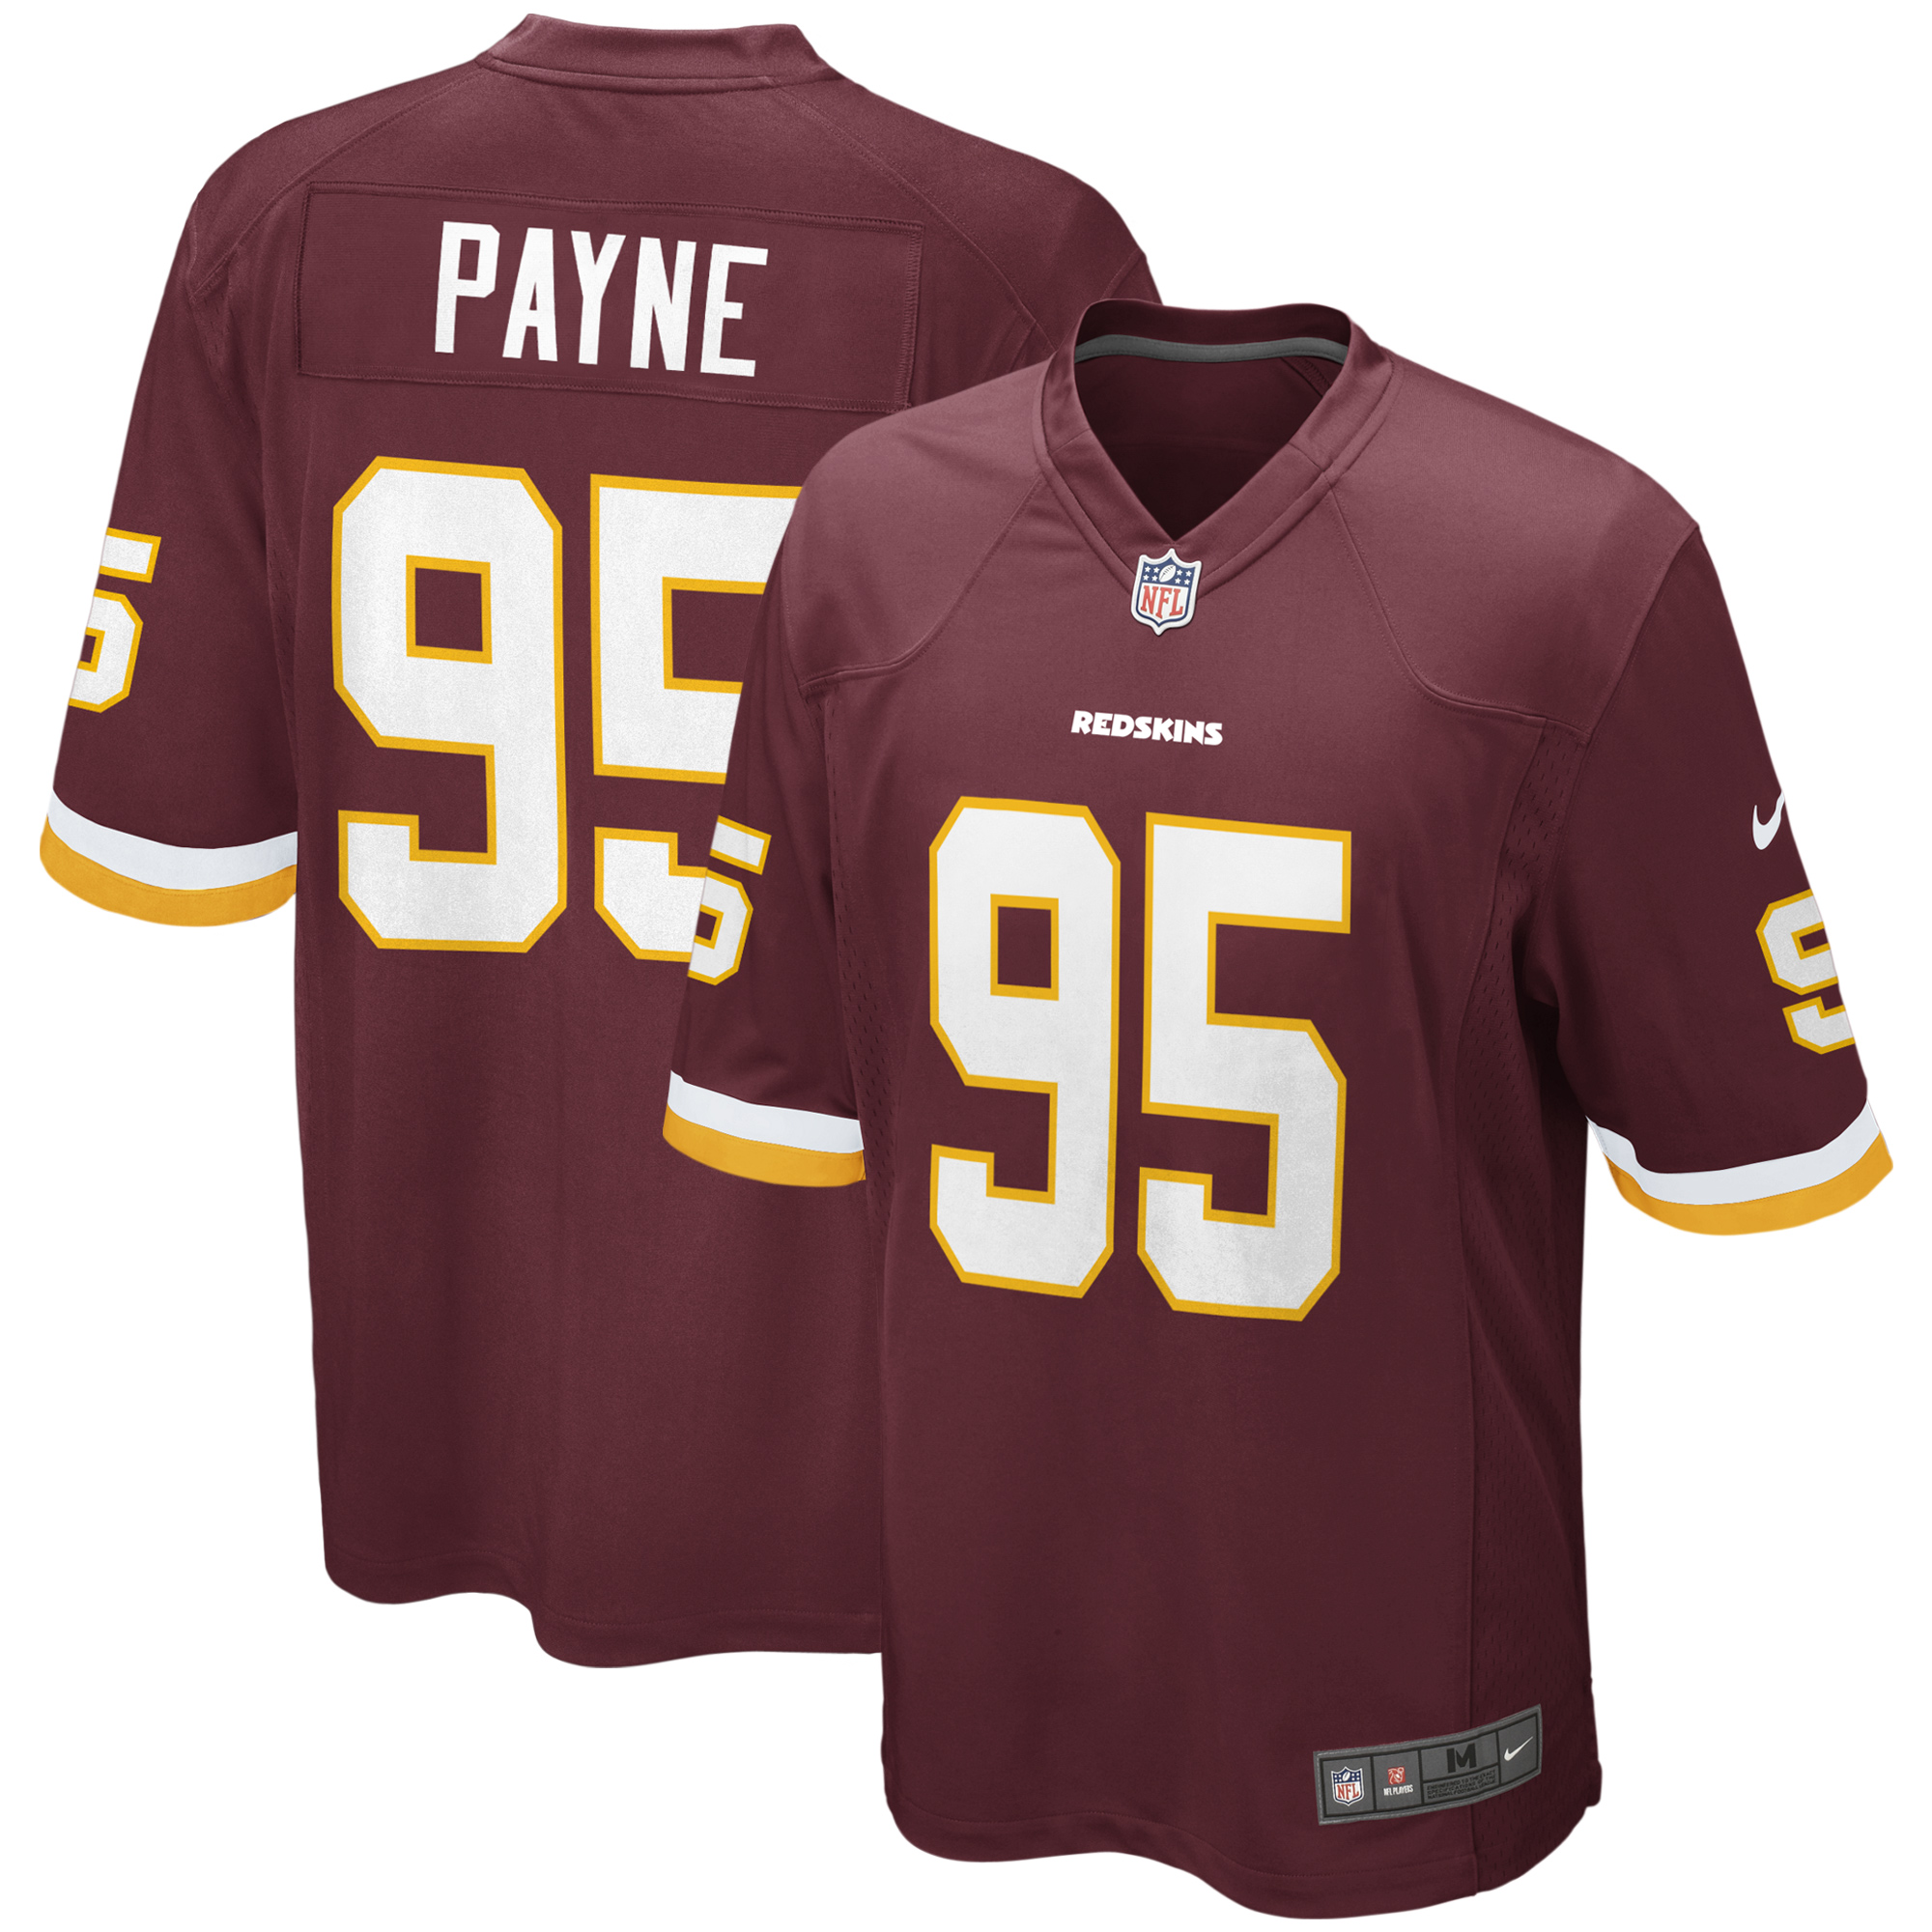 DaRon Payne Washington Redskins Nike Game Jersey - Burgundy